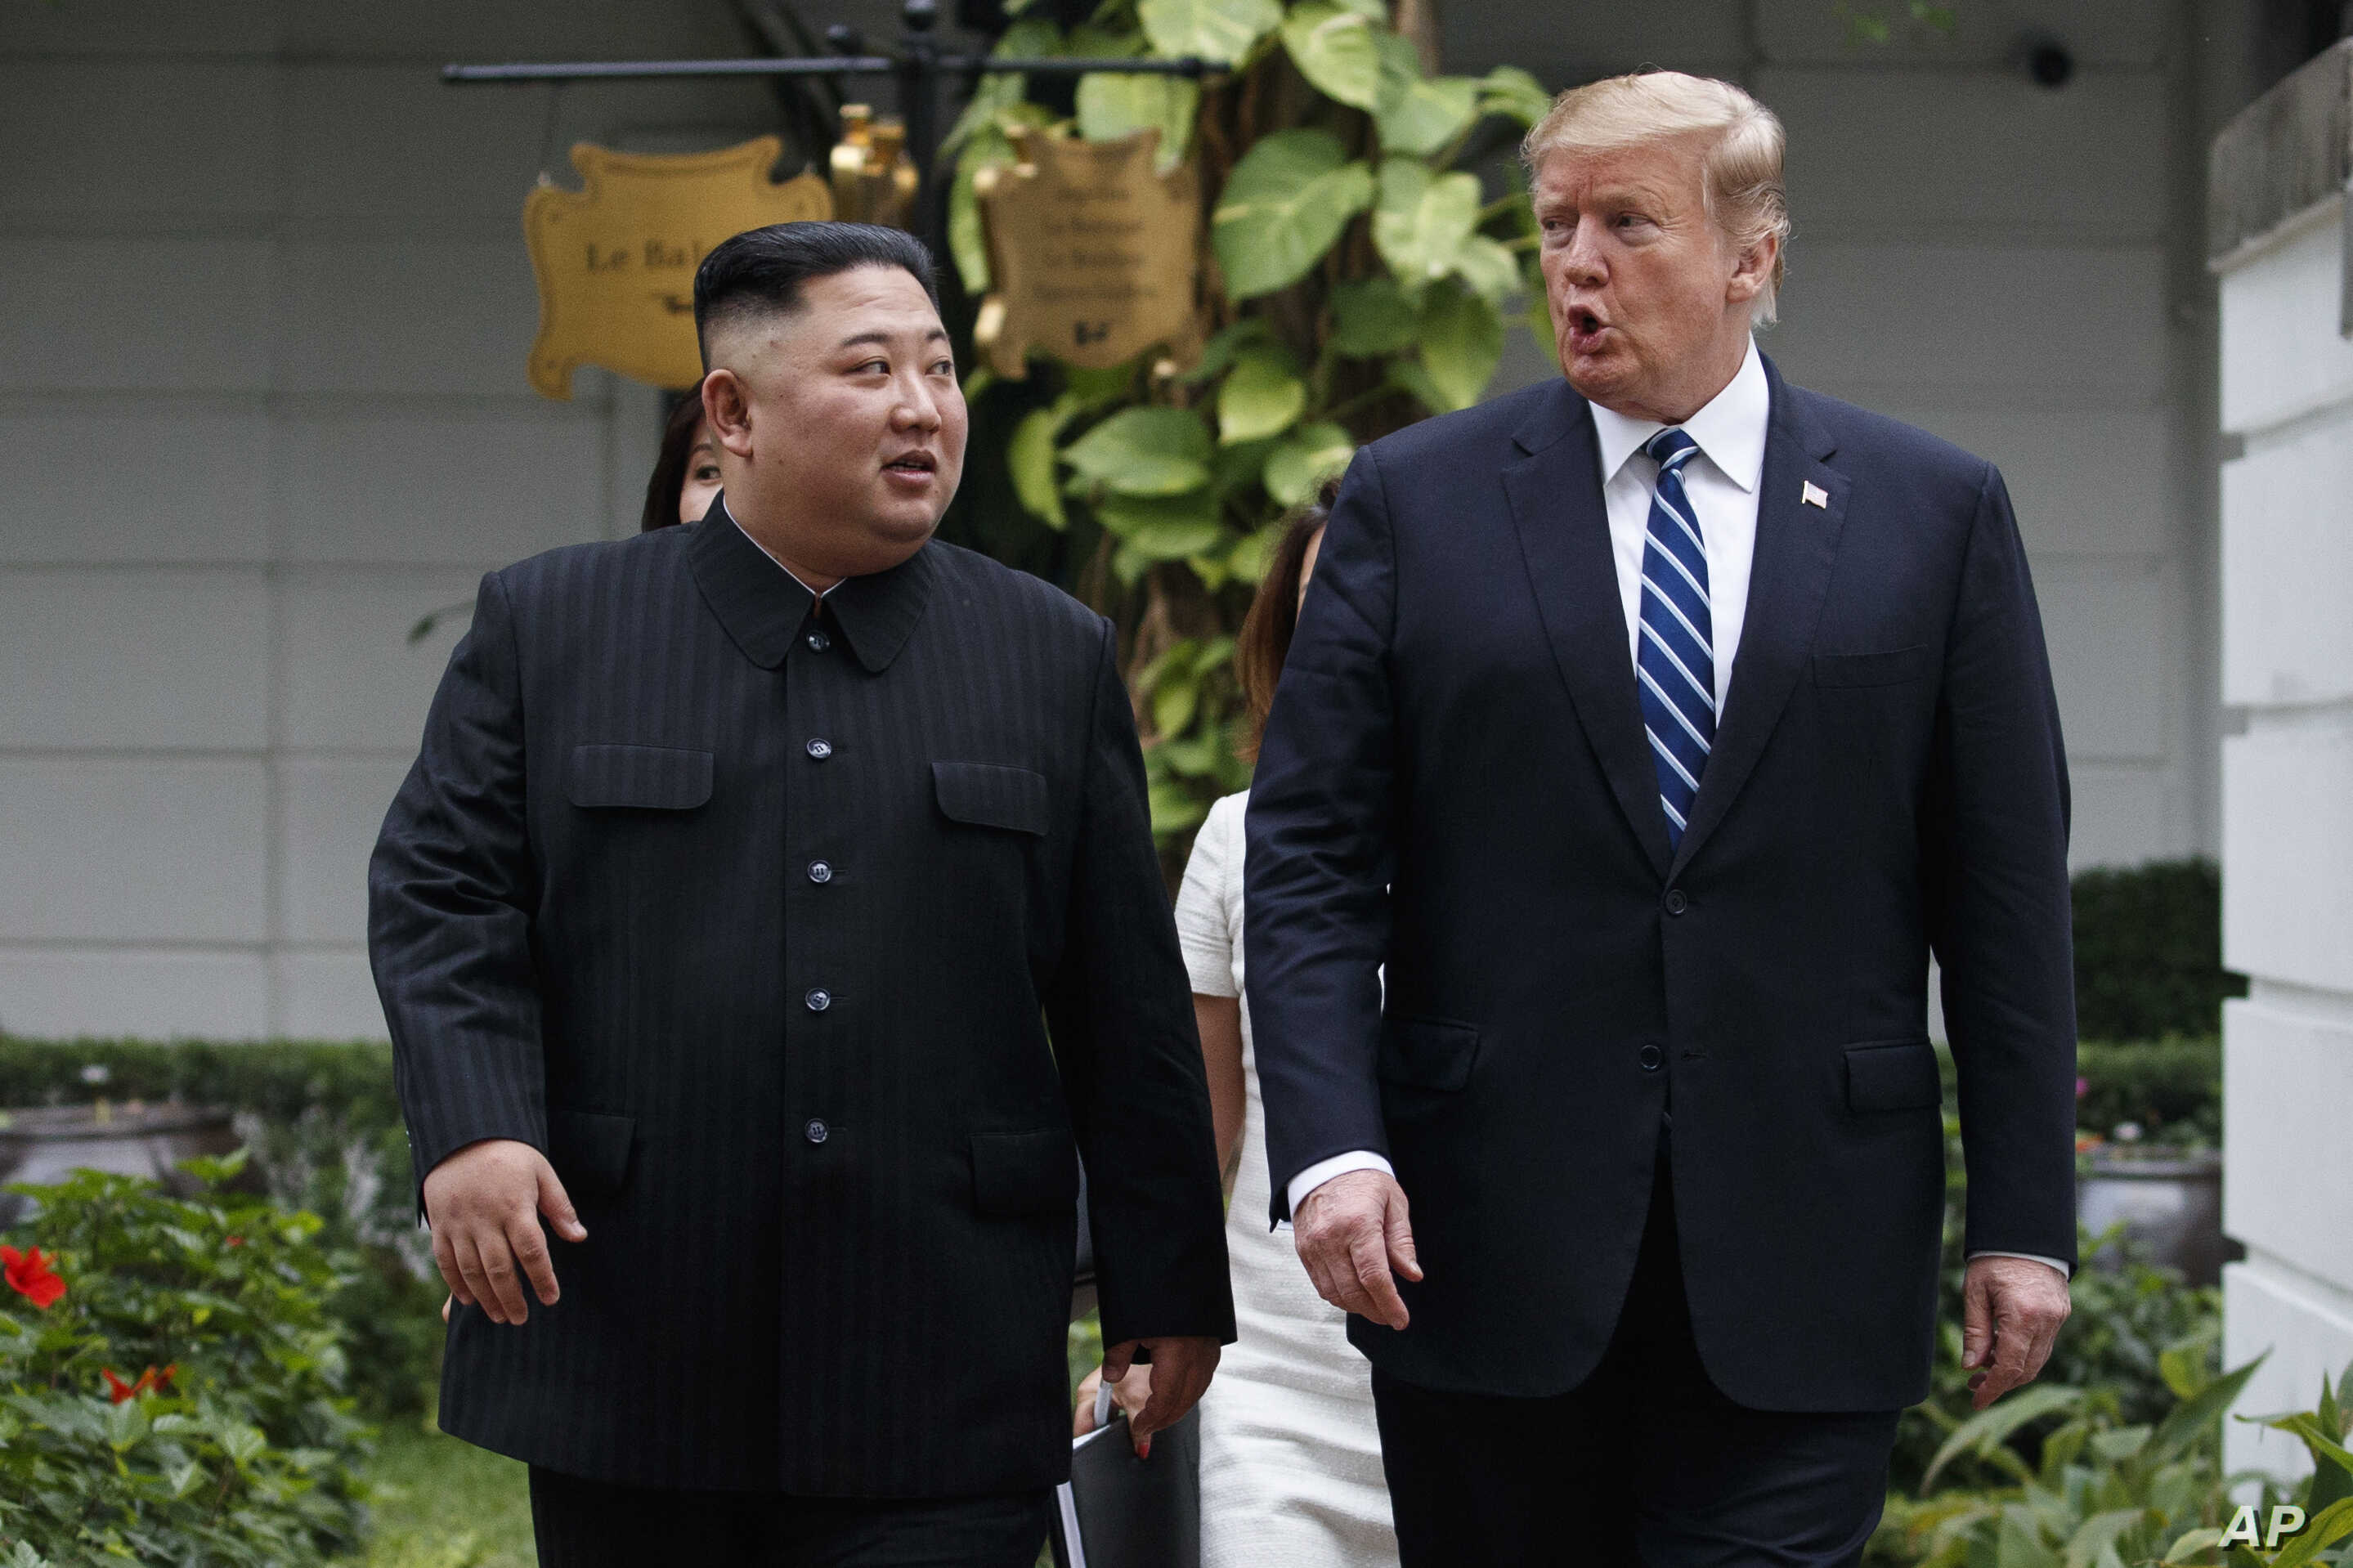 U.S. President Donald Trump and North Korean leader Kim Jong Un take a walk after their first meeting at the Sofitel Legend Metropole Hanoi hotel, Feb. 28, 2019, in Hanoi.